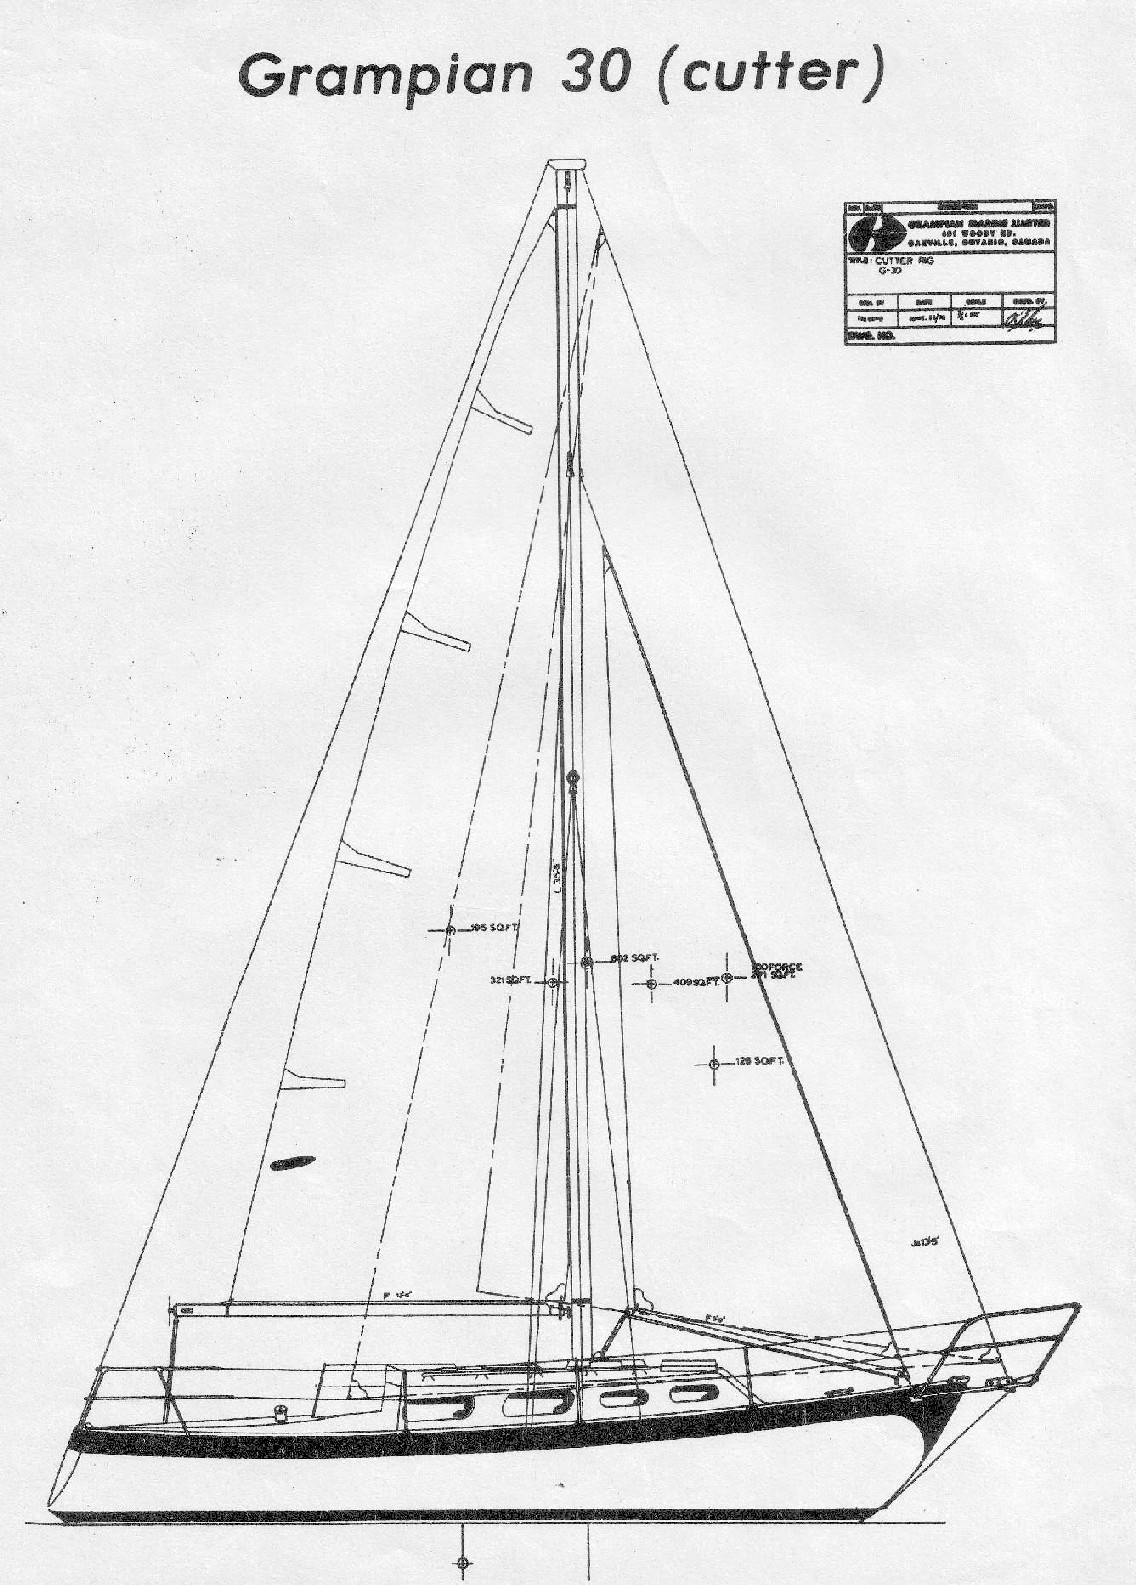 standing rigging diagram ocean ecosystem food chain cutter wiring schematics grampian 30 diagrams rh grampianowners com rigged sailboat